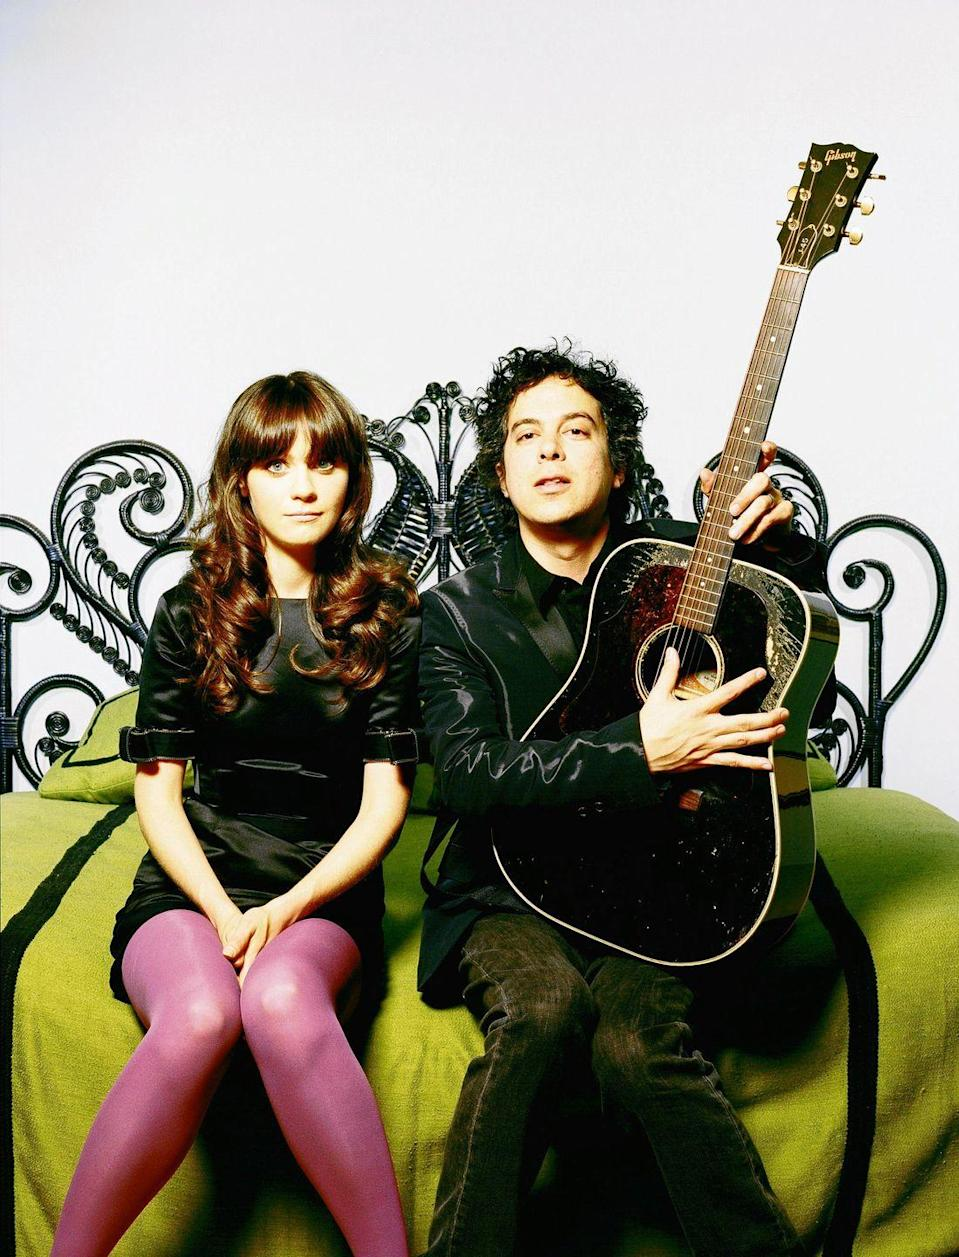 """<p>She & Him, the duo comprised of Elf actress Zooey Deschanel and musician M. Ward, have an old-timey vibe to their music, so this is good for anyone looking for a retro Christmas mood.</p><p><a class=""""link rapid-noclick-resp"""" href=""""https://www.amazon.com/dp/B005V4FJXI?tag=syn-yahoo-20&ascsubtag=%5Bartid%7C10055.g.2680%5Bsrc%7Cyahoo-us"""" rel=""""nofollow noopener"""" target=""""_blank"""" data-ylk=""""slk:AMAZON"""">AMAZON</a> <a class=""""link rapid-noclick-resp"""" href=""""https://go.redirectingat.com?id=74968X1596630&url=https%3A%2F%2Fmusic.apple.com%2Fus%2Falbum%2Fa-very-she-him-christmas%2F467461972&sref=https%3A%2F%2Fwww.goodhousekeeping.com%2Fholidays%2Fchristmas-ideas%2Fg2680%2Fchristmas-songs%2F"""" rel=""""nofollow noopener"""" target=""""_blank"""" data-ylk=""""slk:ITUNES"""">ITUNES</a> </p>"""